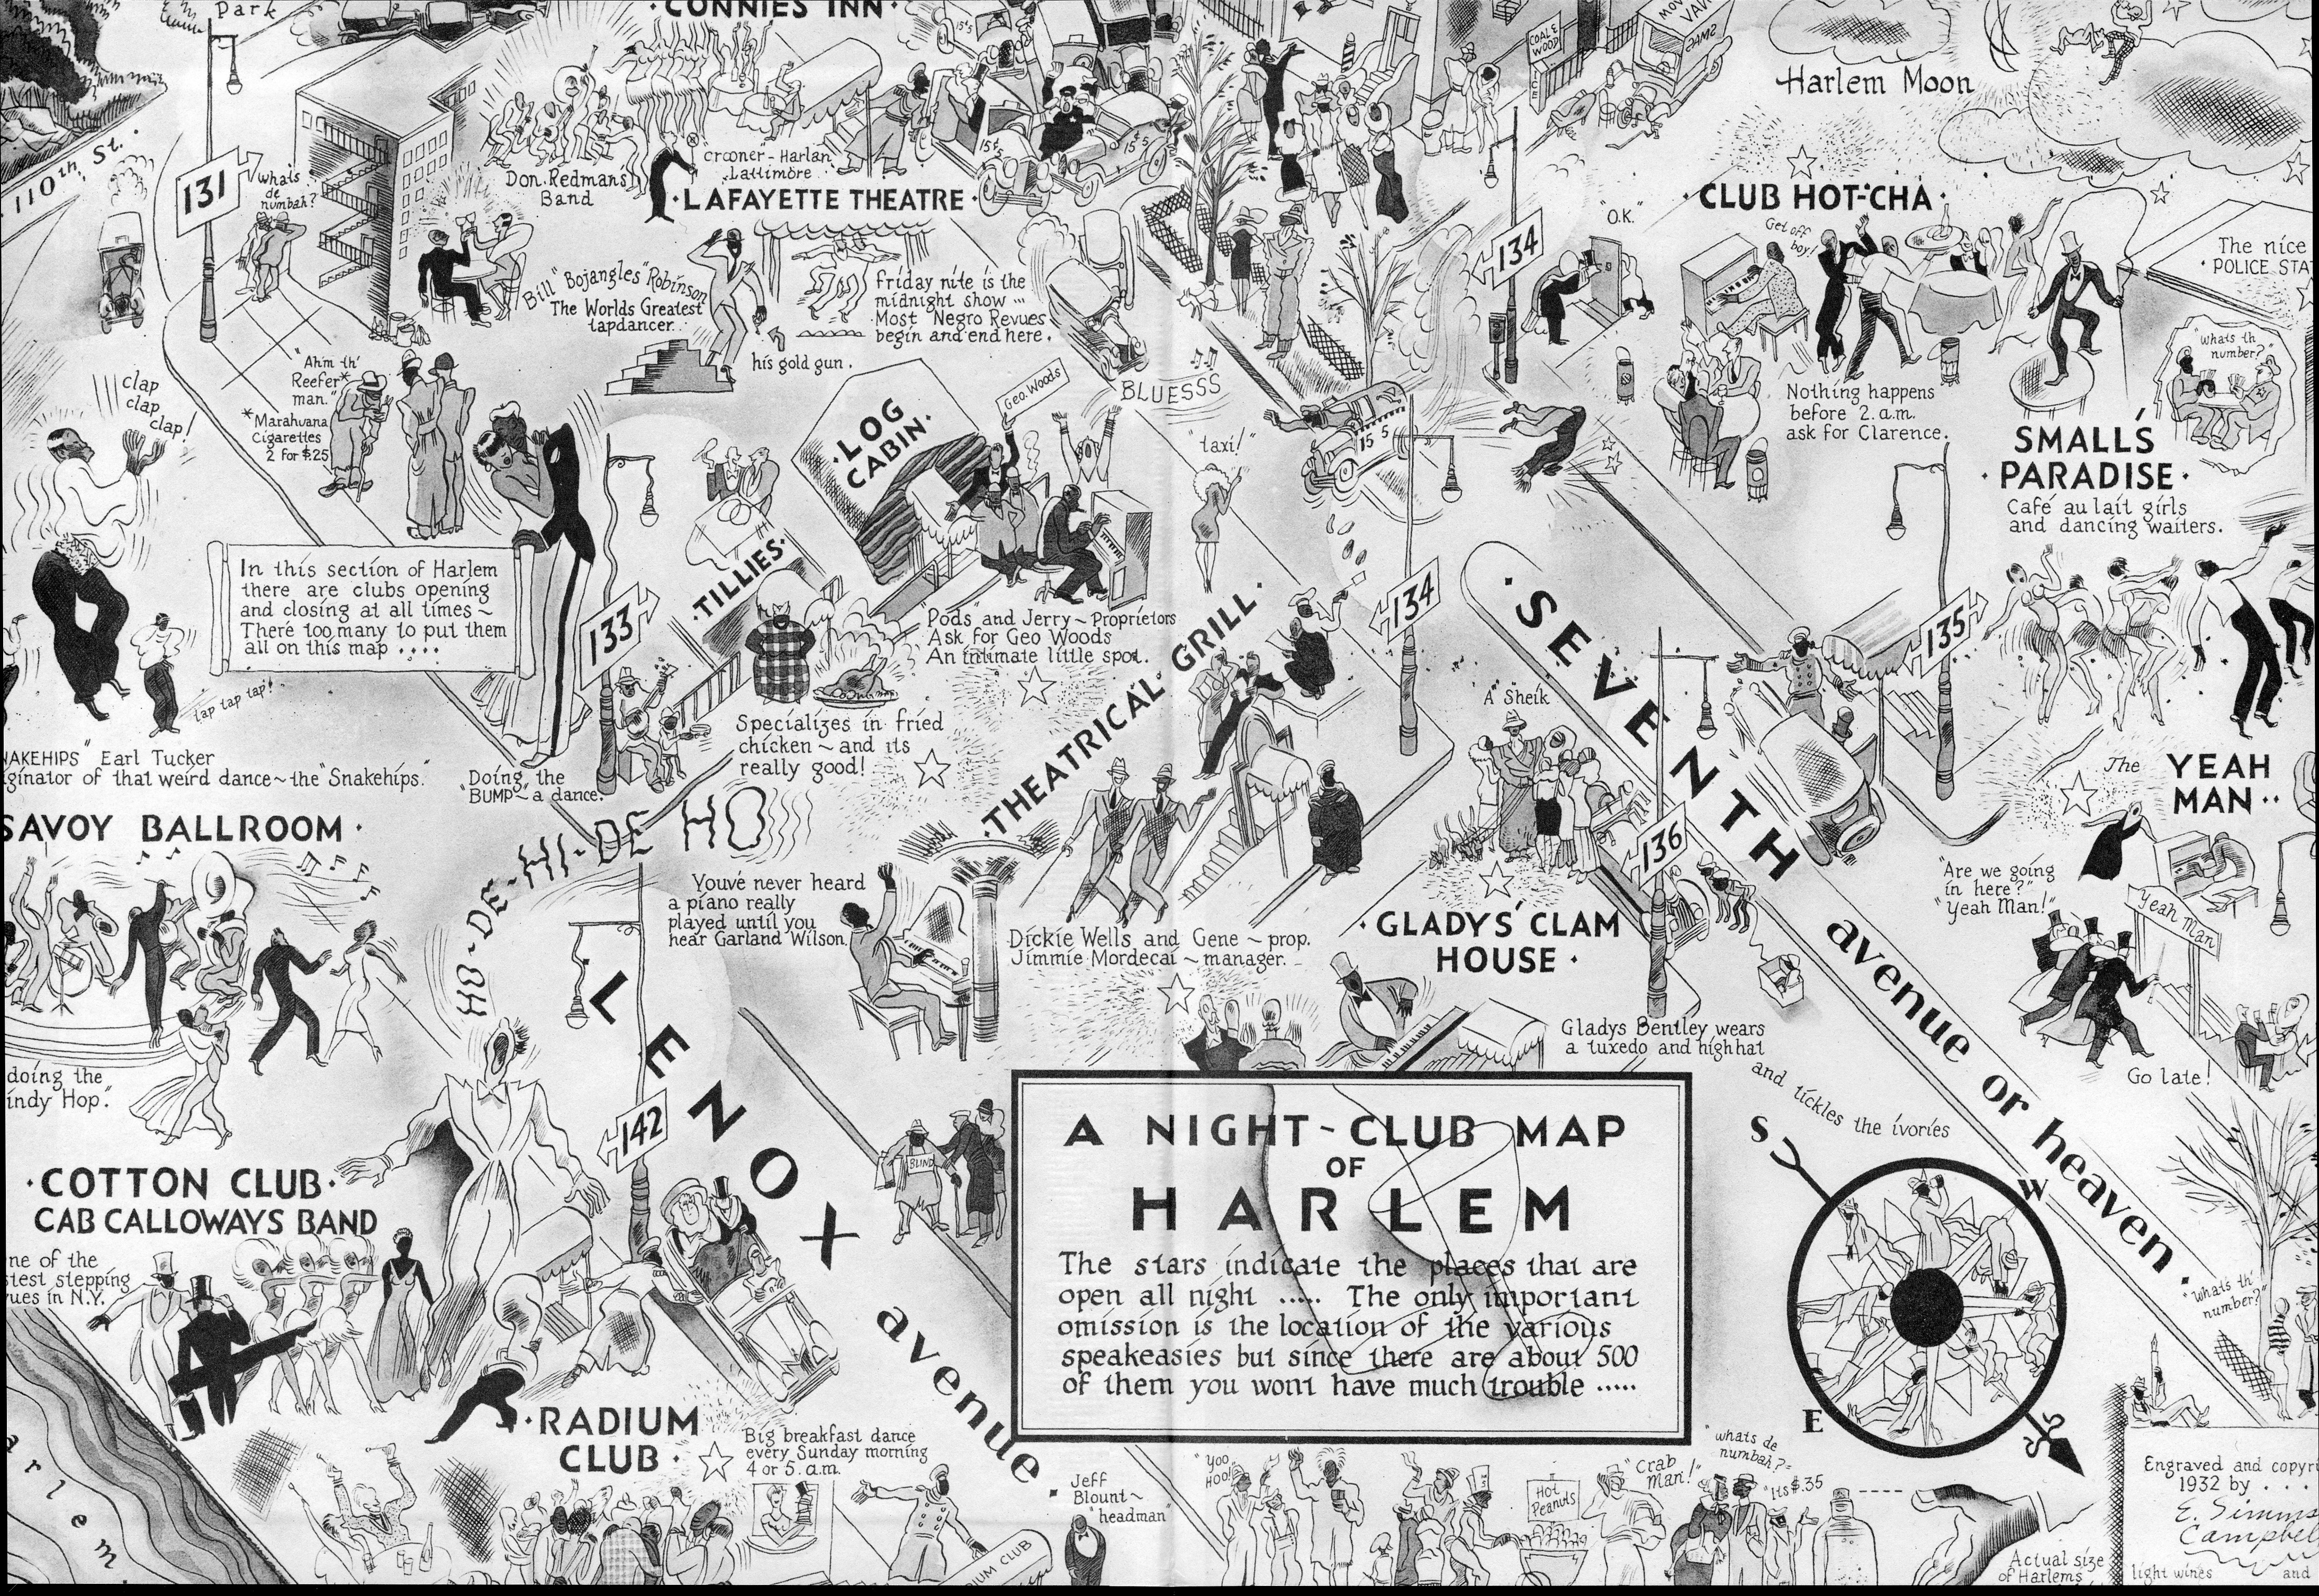 Map Of New York Harlem.A 1932 Illustrated Map Of Harlem S Night Clubs From The Cotton Club